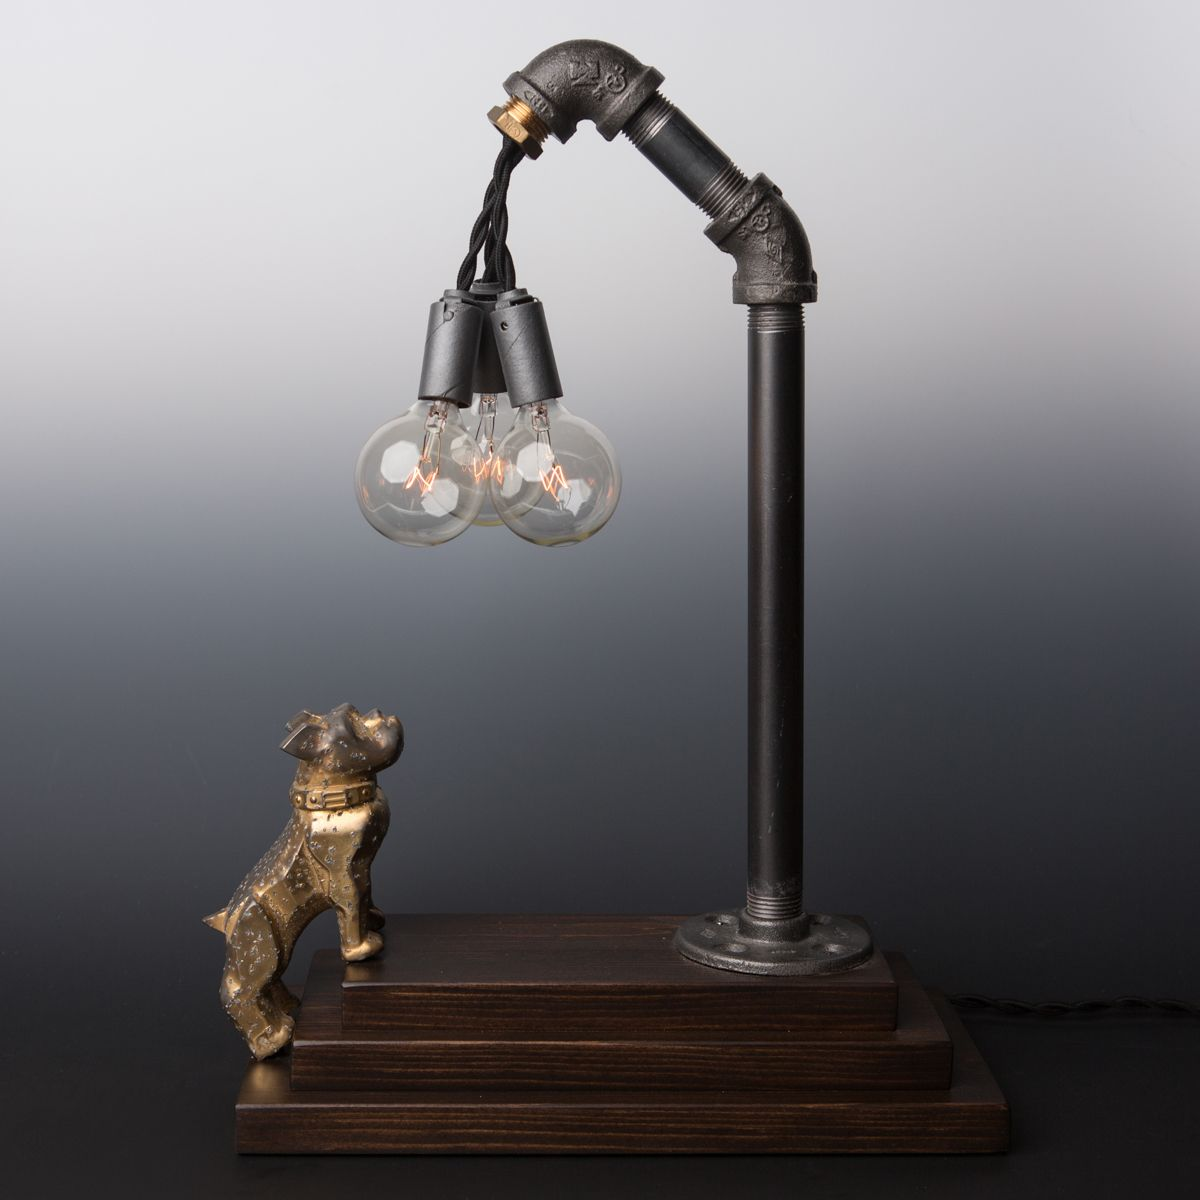 Mack Bulldog Touch Sensor Lamp Brass Touch Lamp Lamp Novelty Lamp